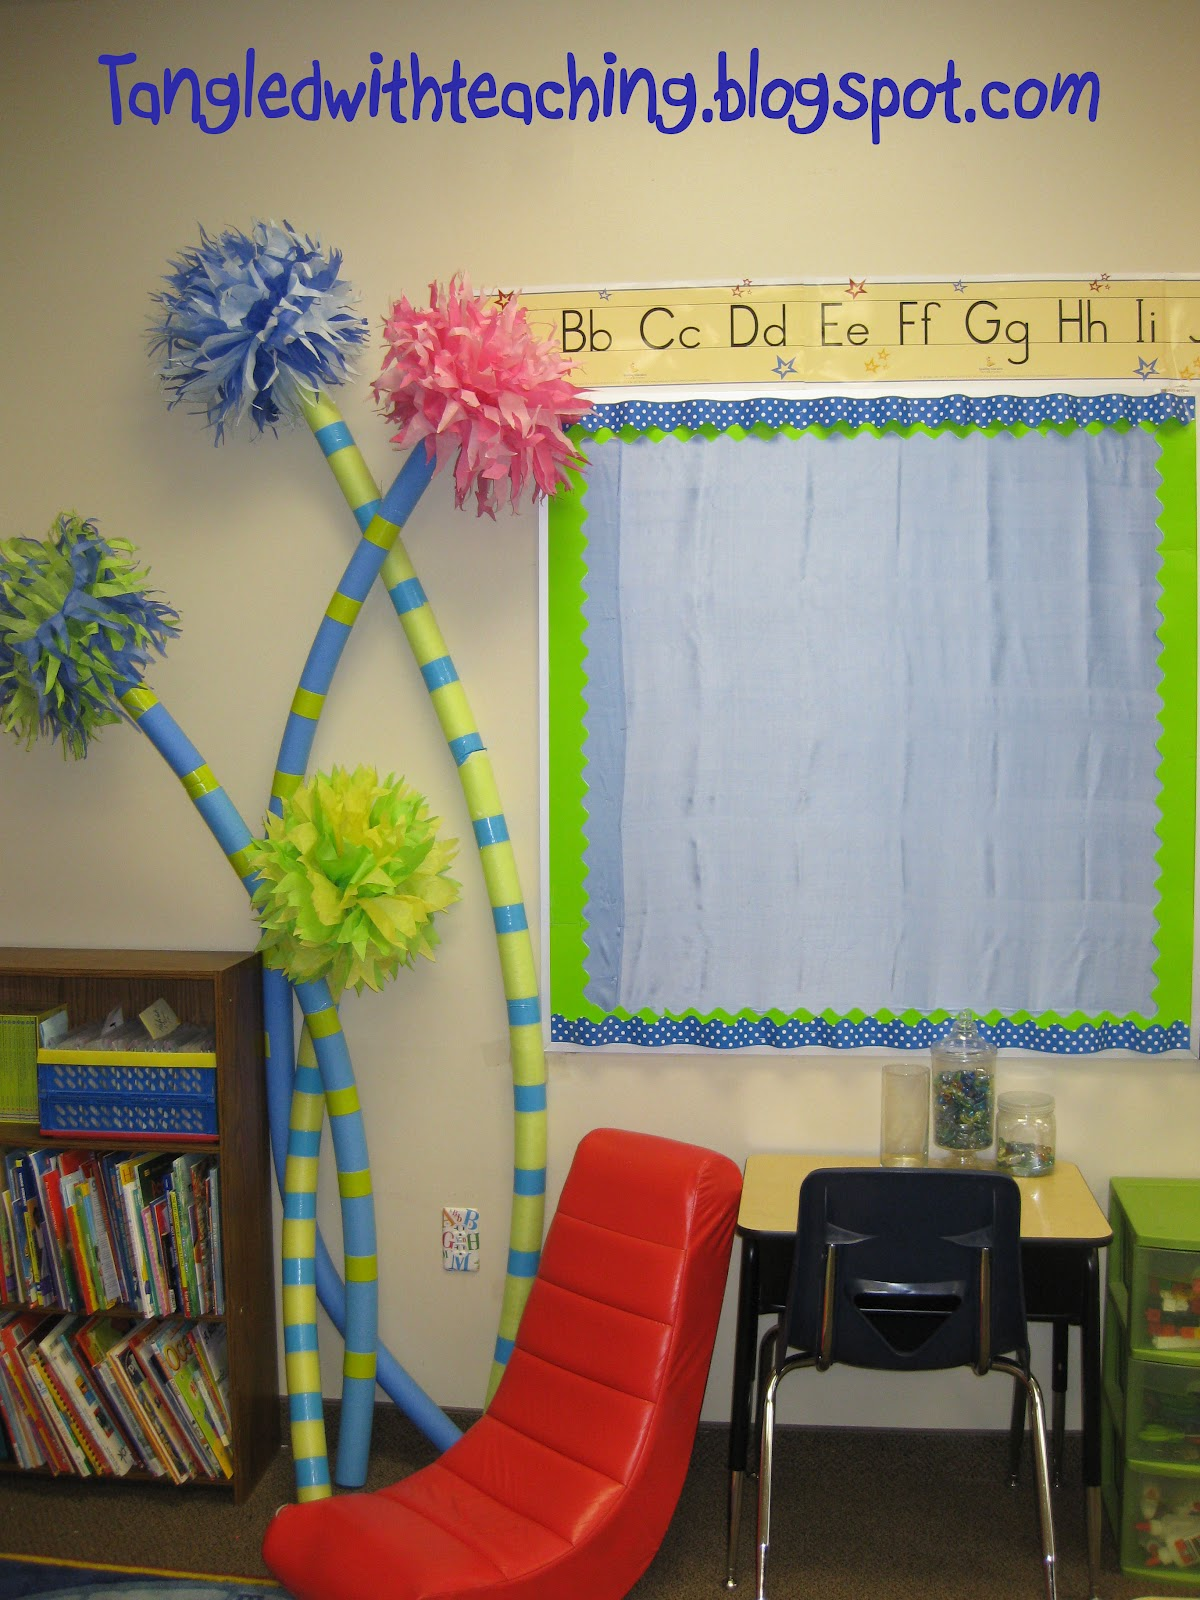 Classroom Decoration Dr Seuss ~ Tangled with teaching dr seuss classroom theme day